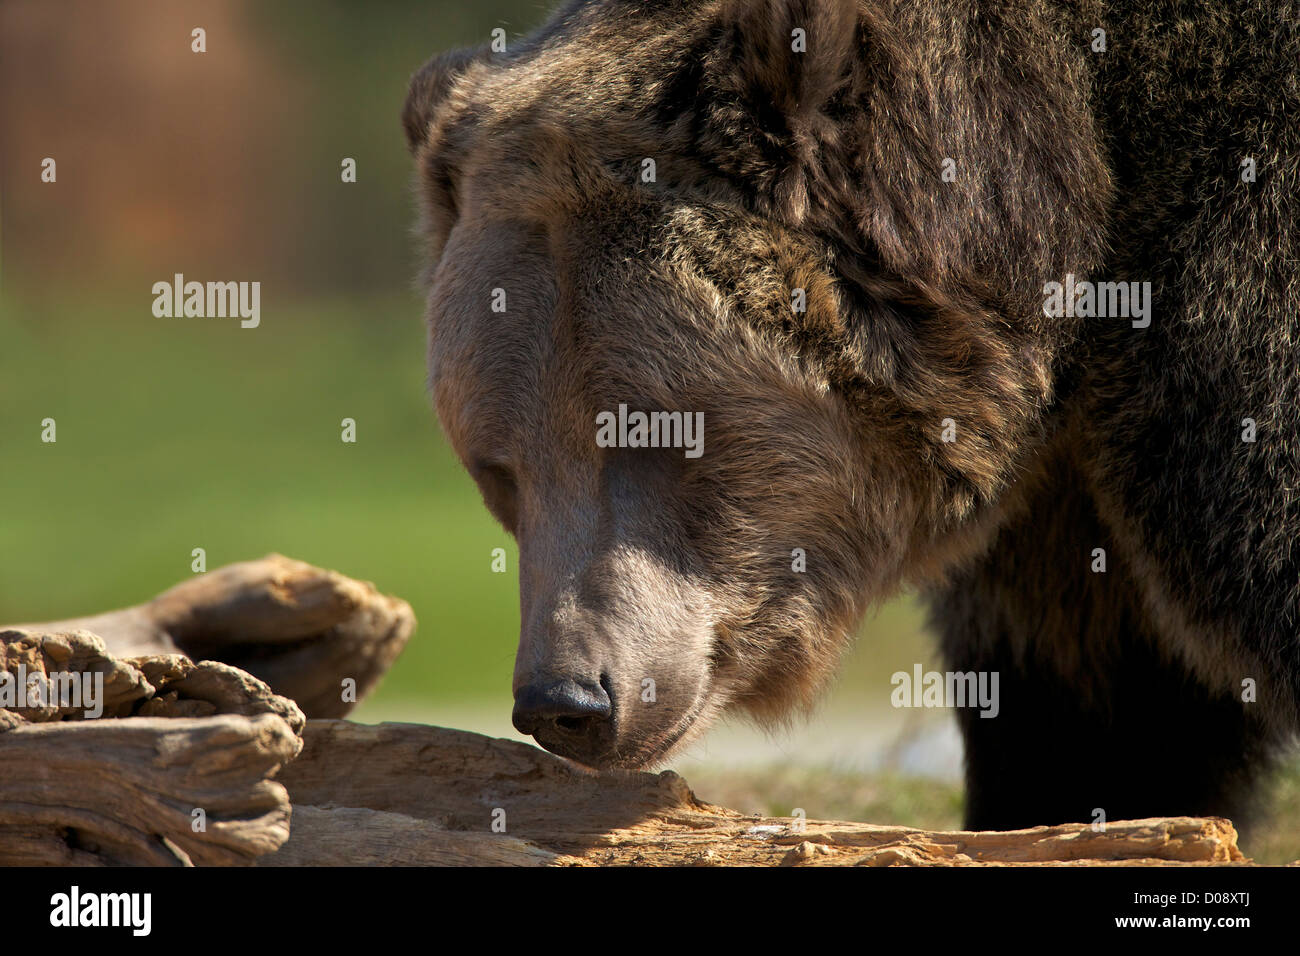 Grizzly Bear, Ursus arctos horribilis, el oso pardo y el lobo Discovery Center, West Yellowstone, Montana, EE.UU. Imagen De Stock